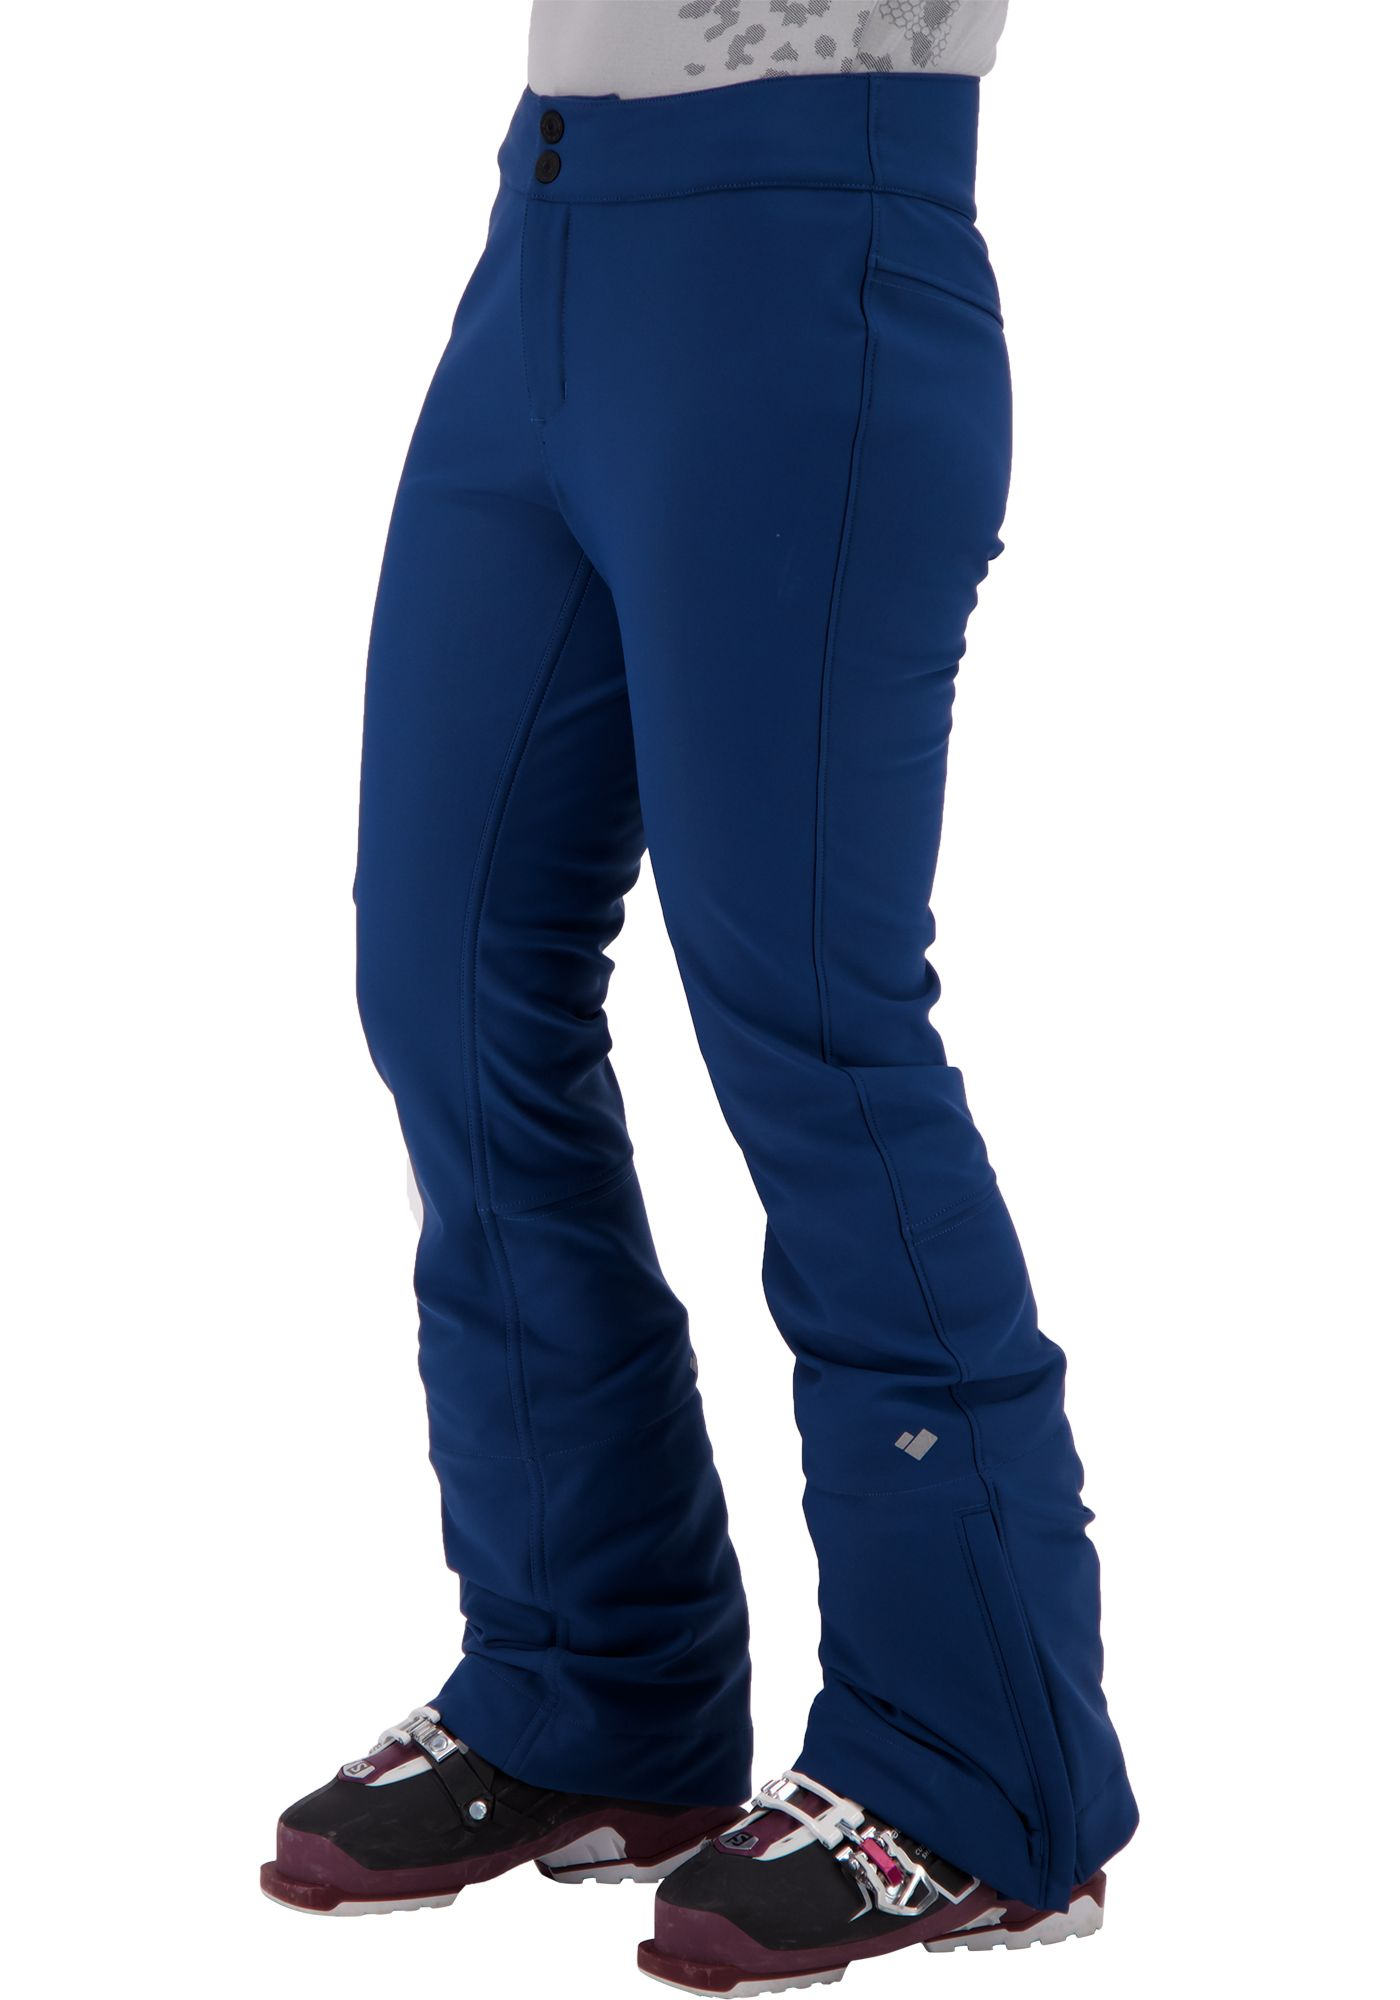 Obermeyer Women's The Bond Ski Pants